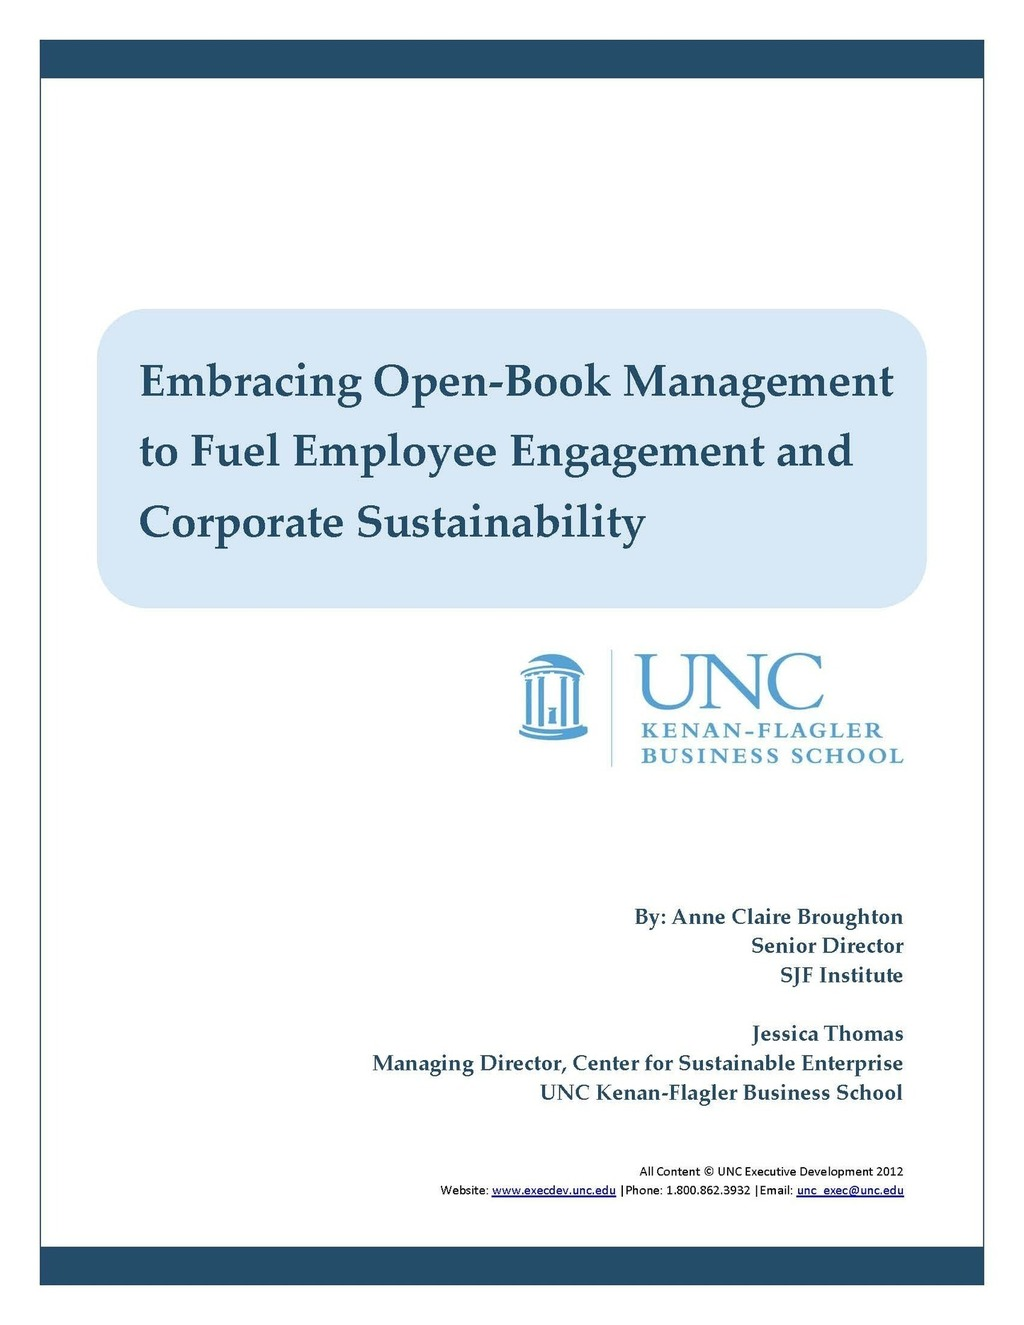 on the power of open-book management: employee engagement happens when you ask people to think and act like owners of the business.